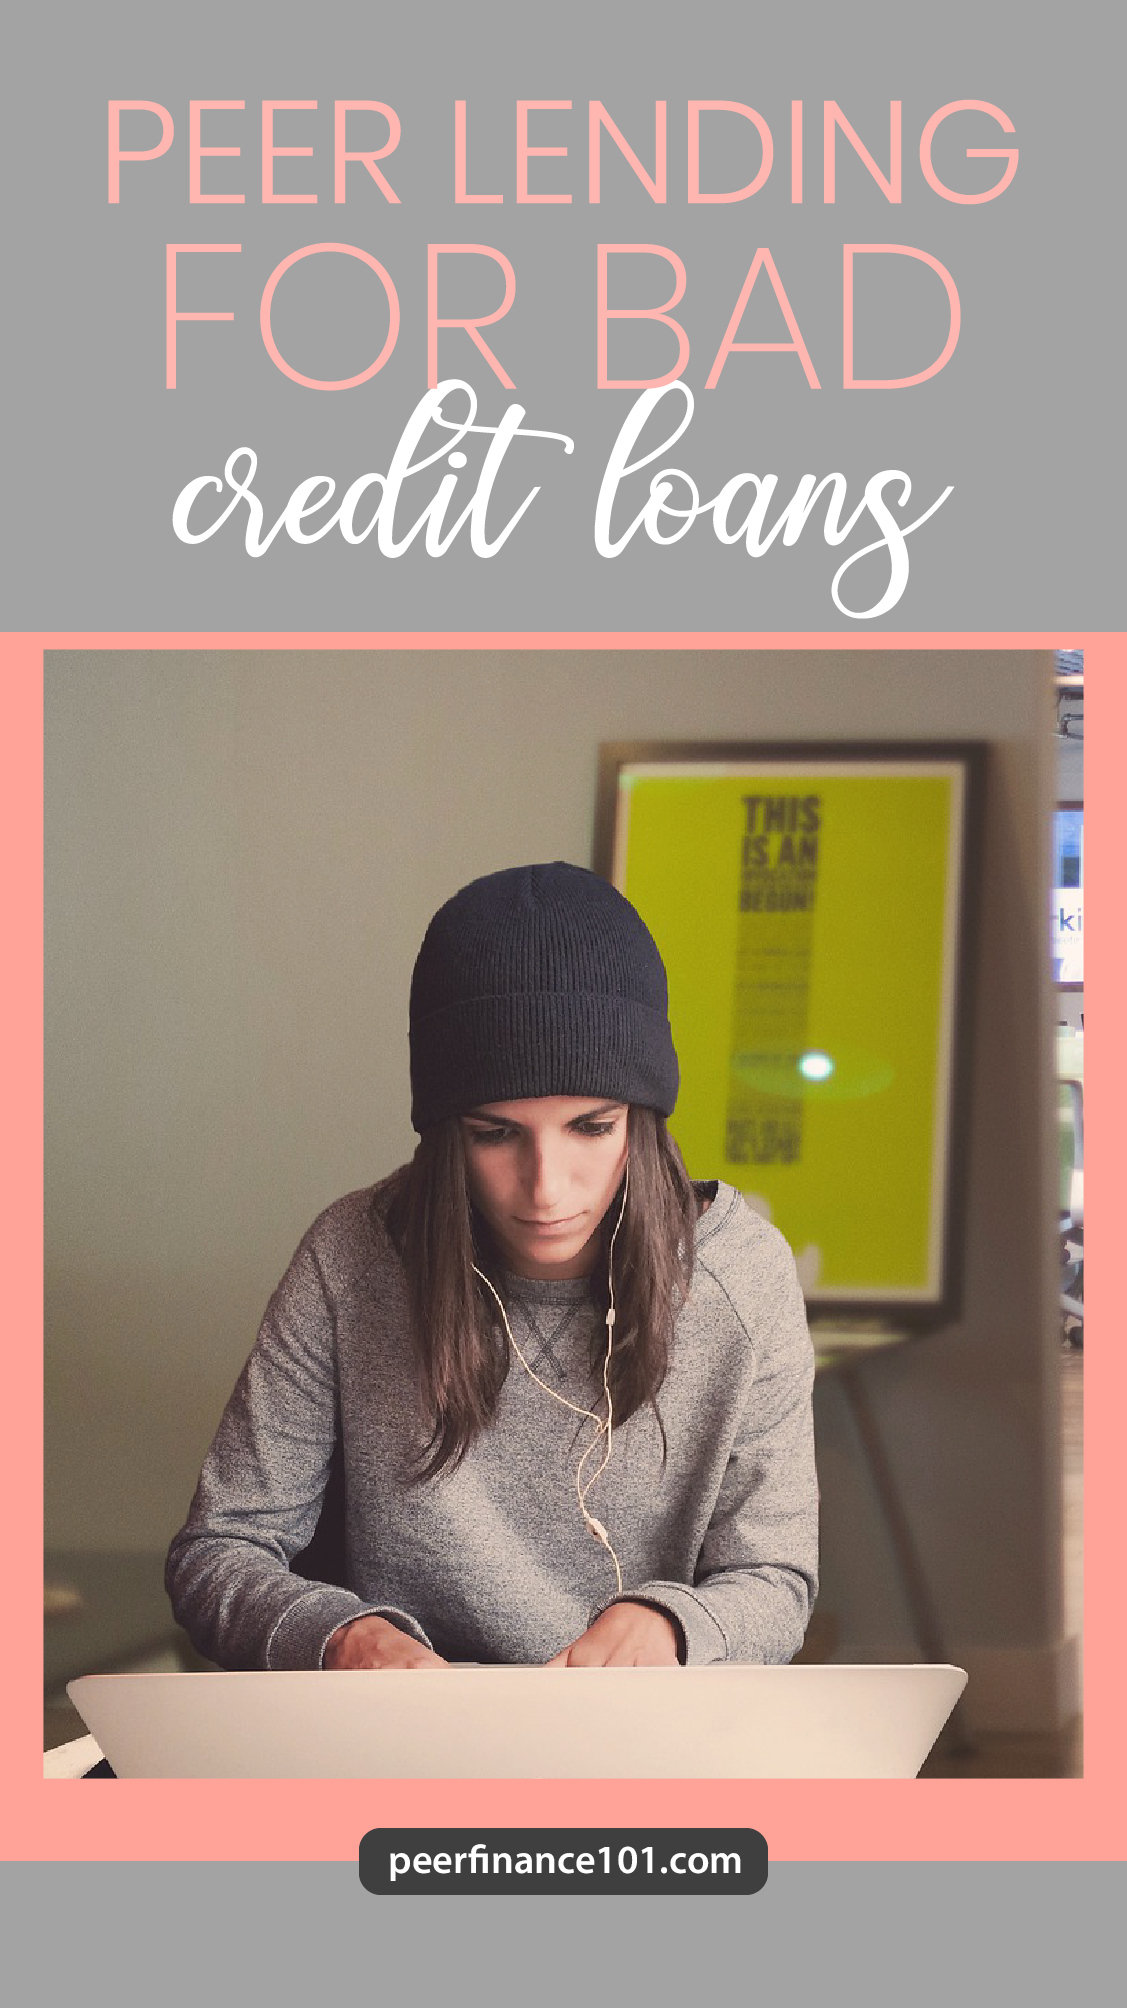 Pin On Loans For Bad Credit Score